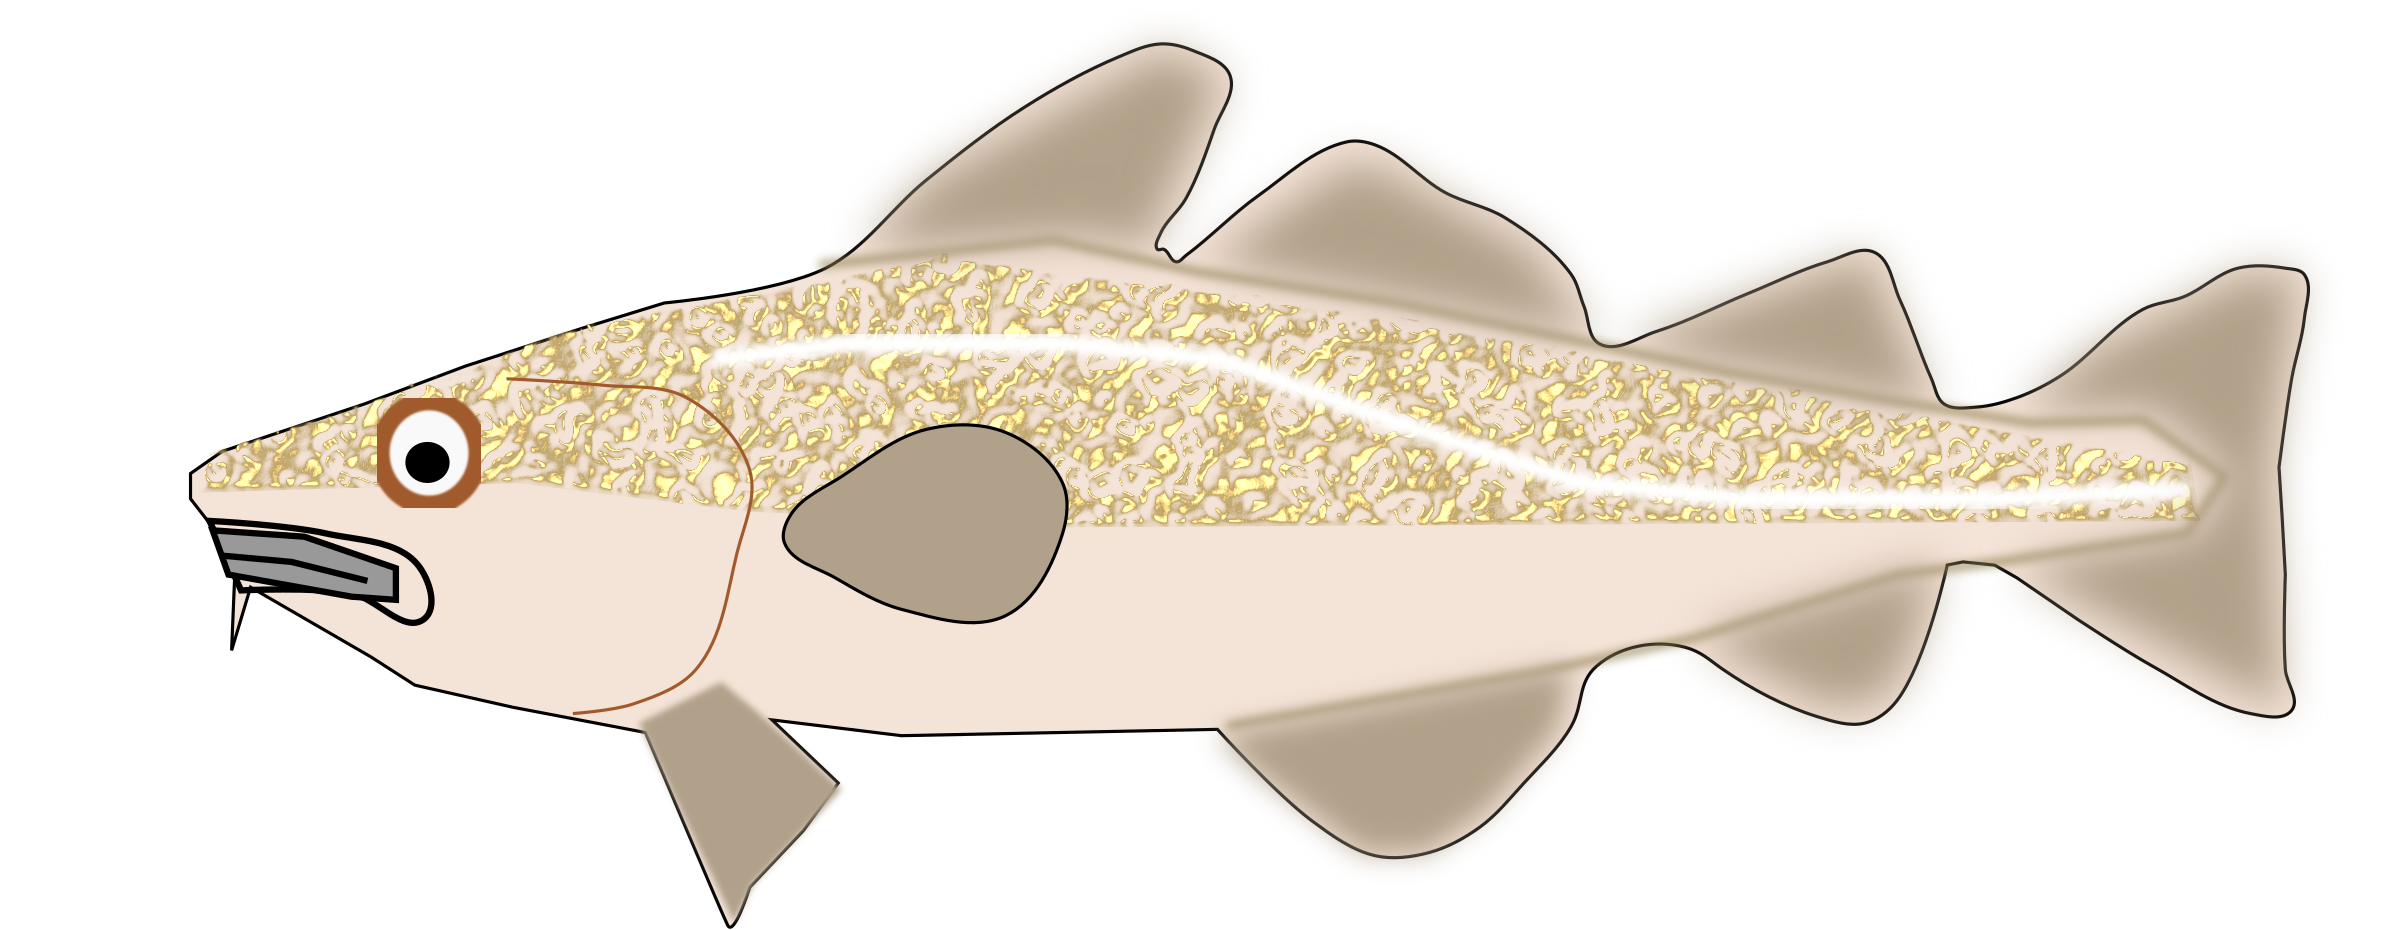 Cod fish clipart graphic royalty free Clipart - Codfish graphic royalty free